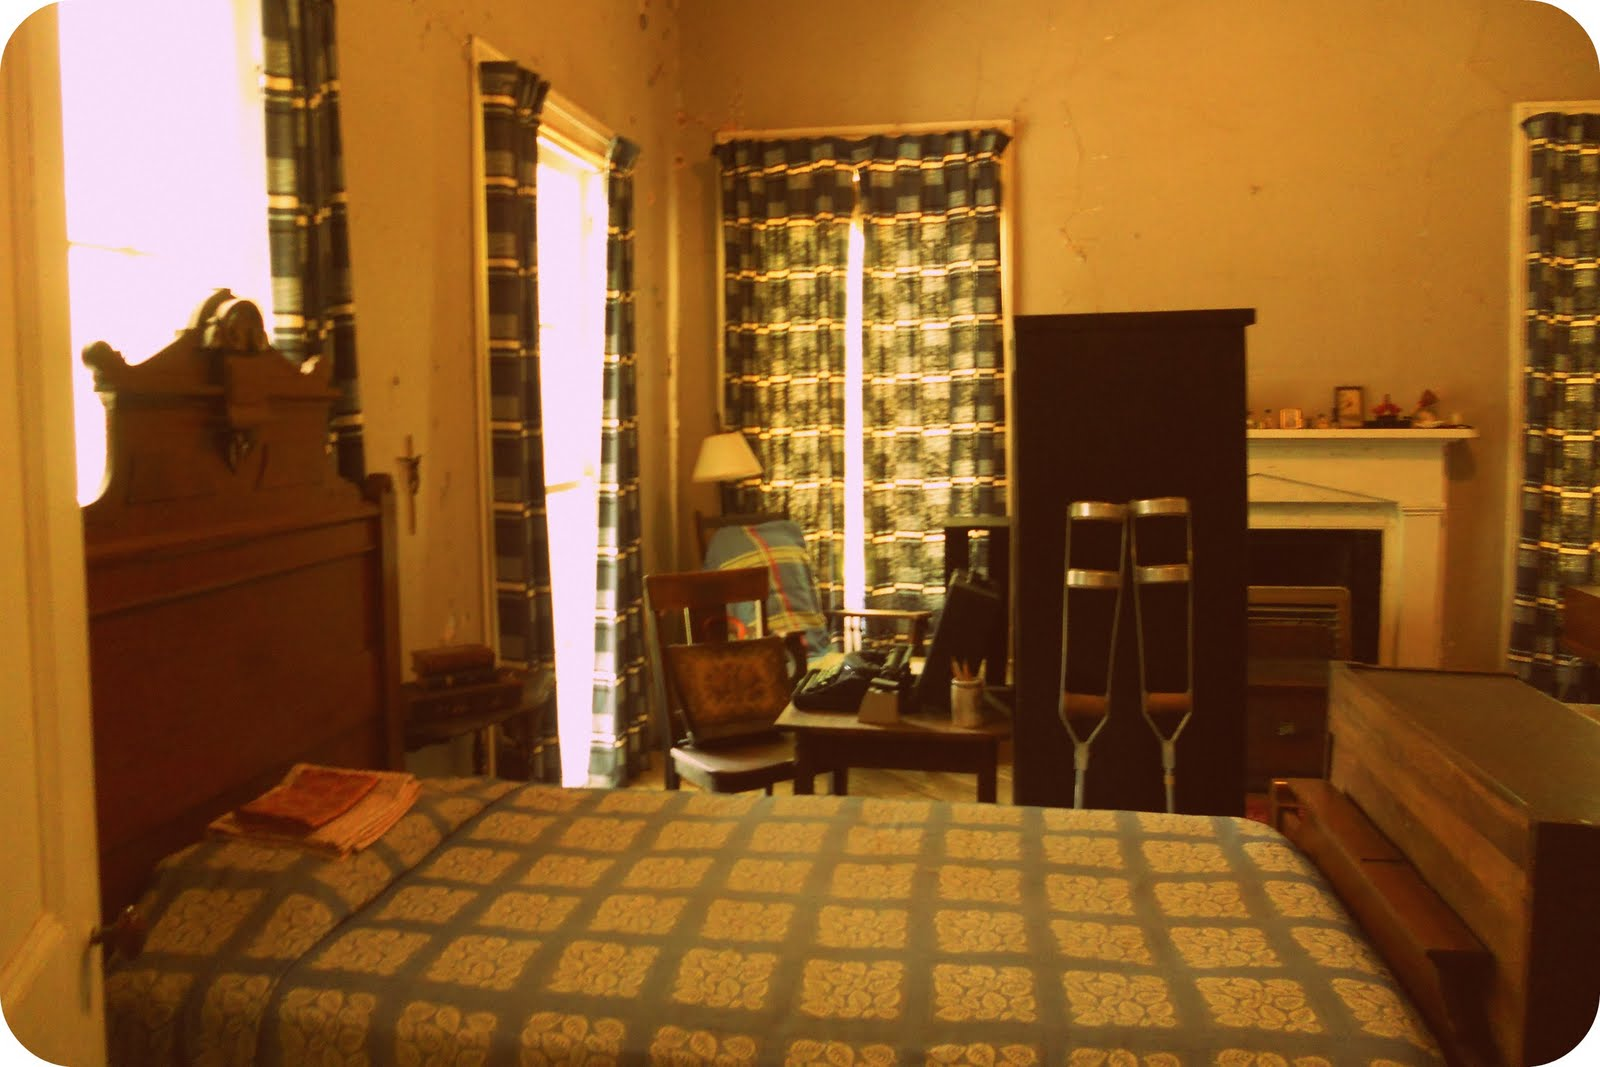 O'Connor's bedroom